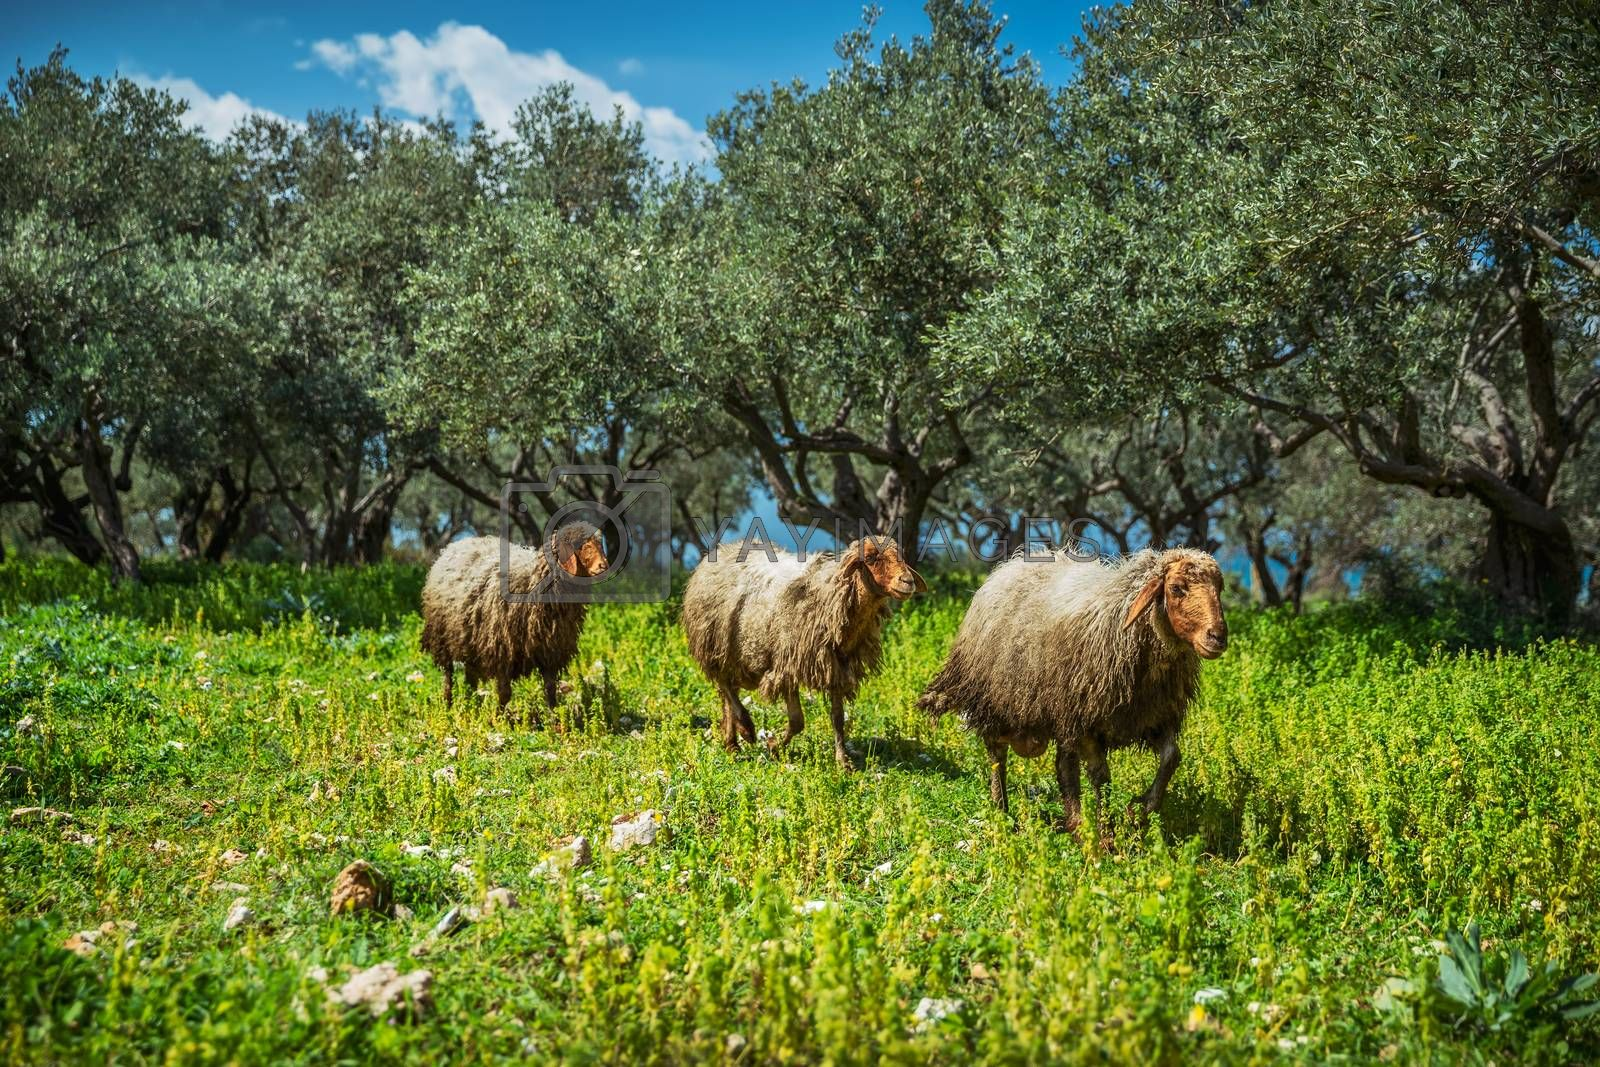 Royalty free image of Sheeps on the Pasture by Anna_Omelchenko